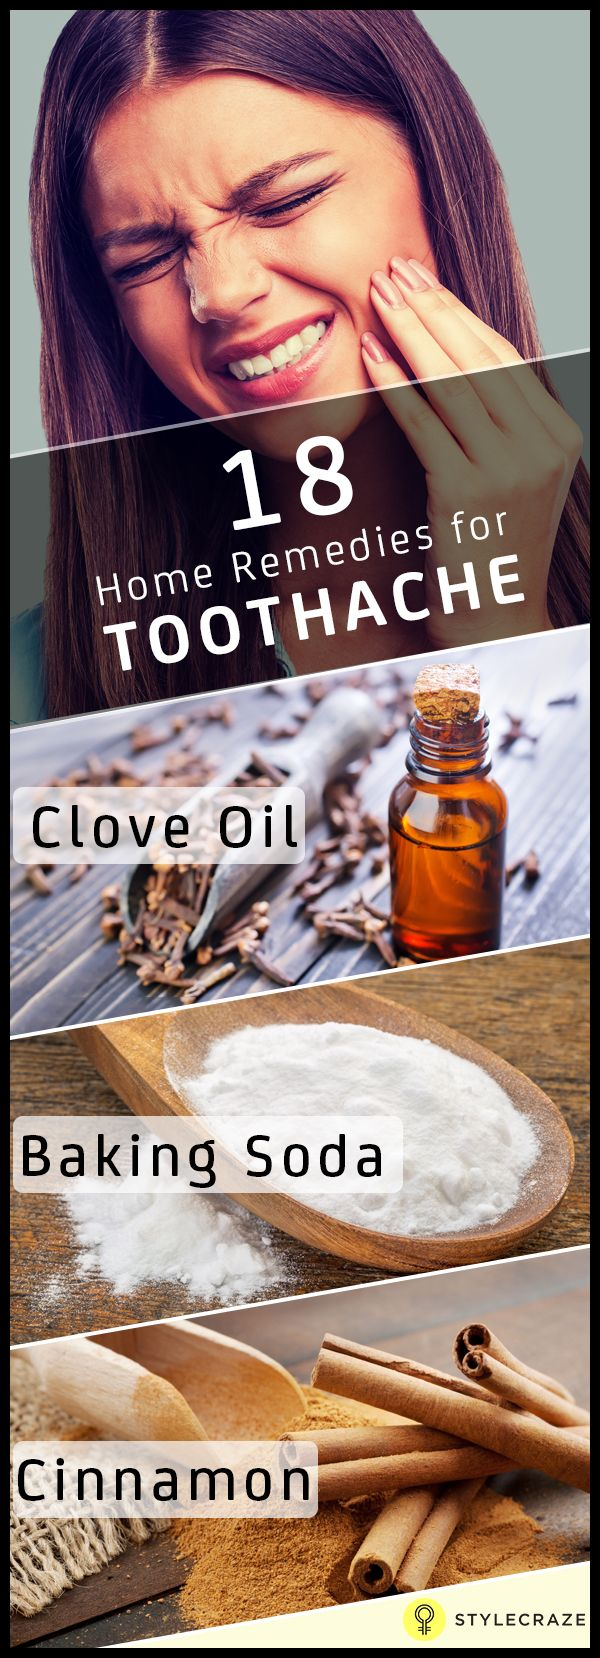 Home Remedies for a Toothache  Remedies Health advice and